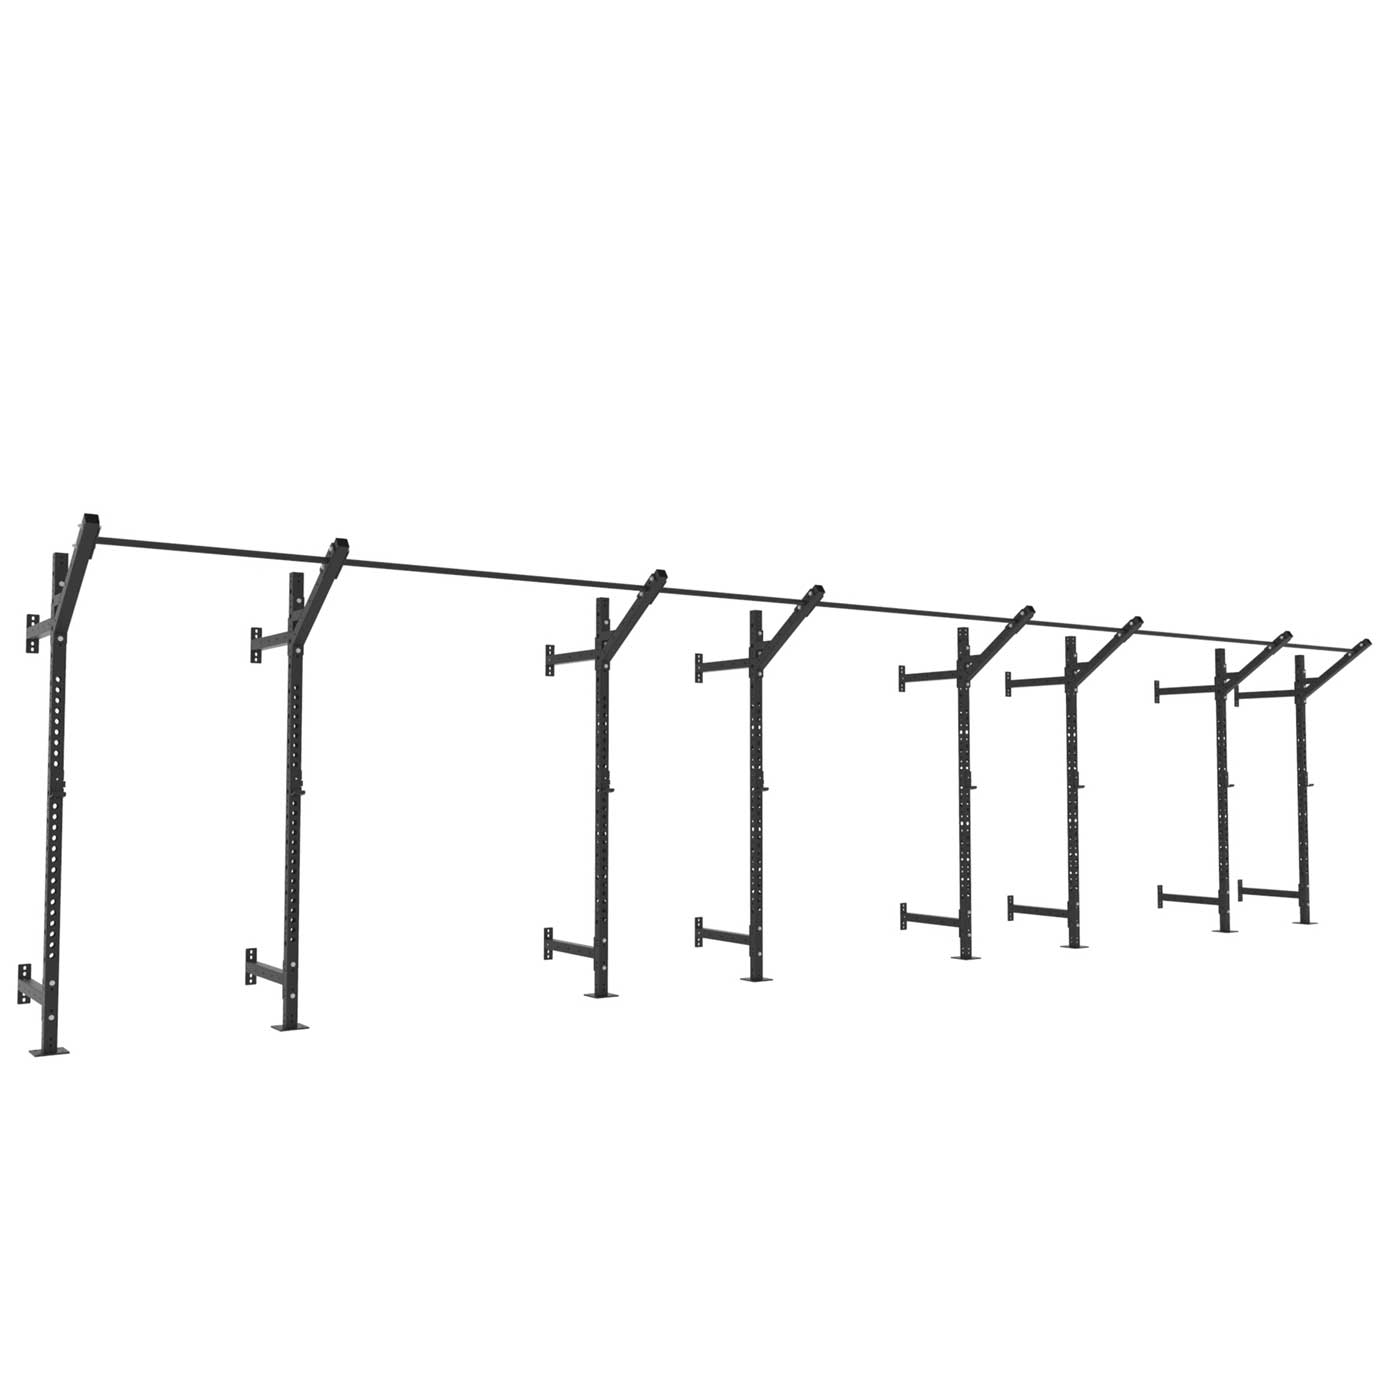 34ft XSR Wall Mounted Pull-up Rig